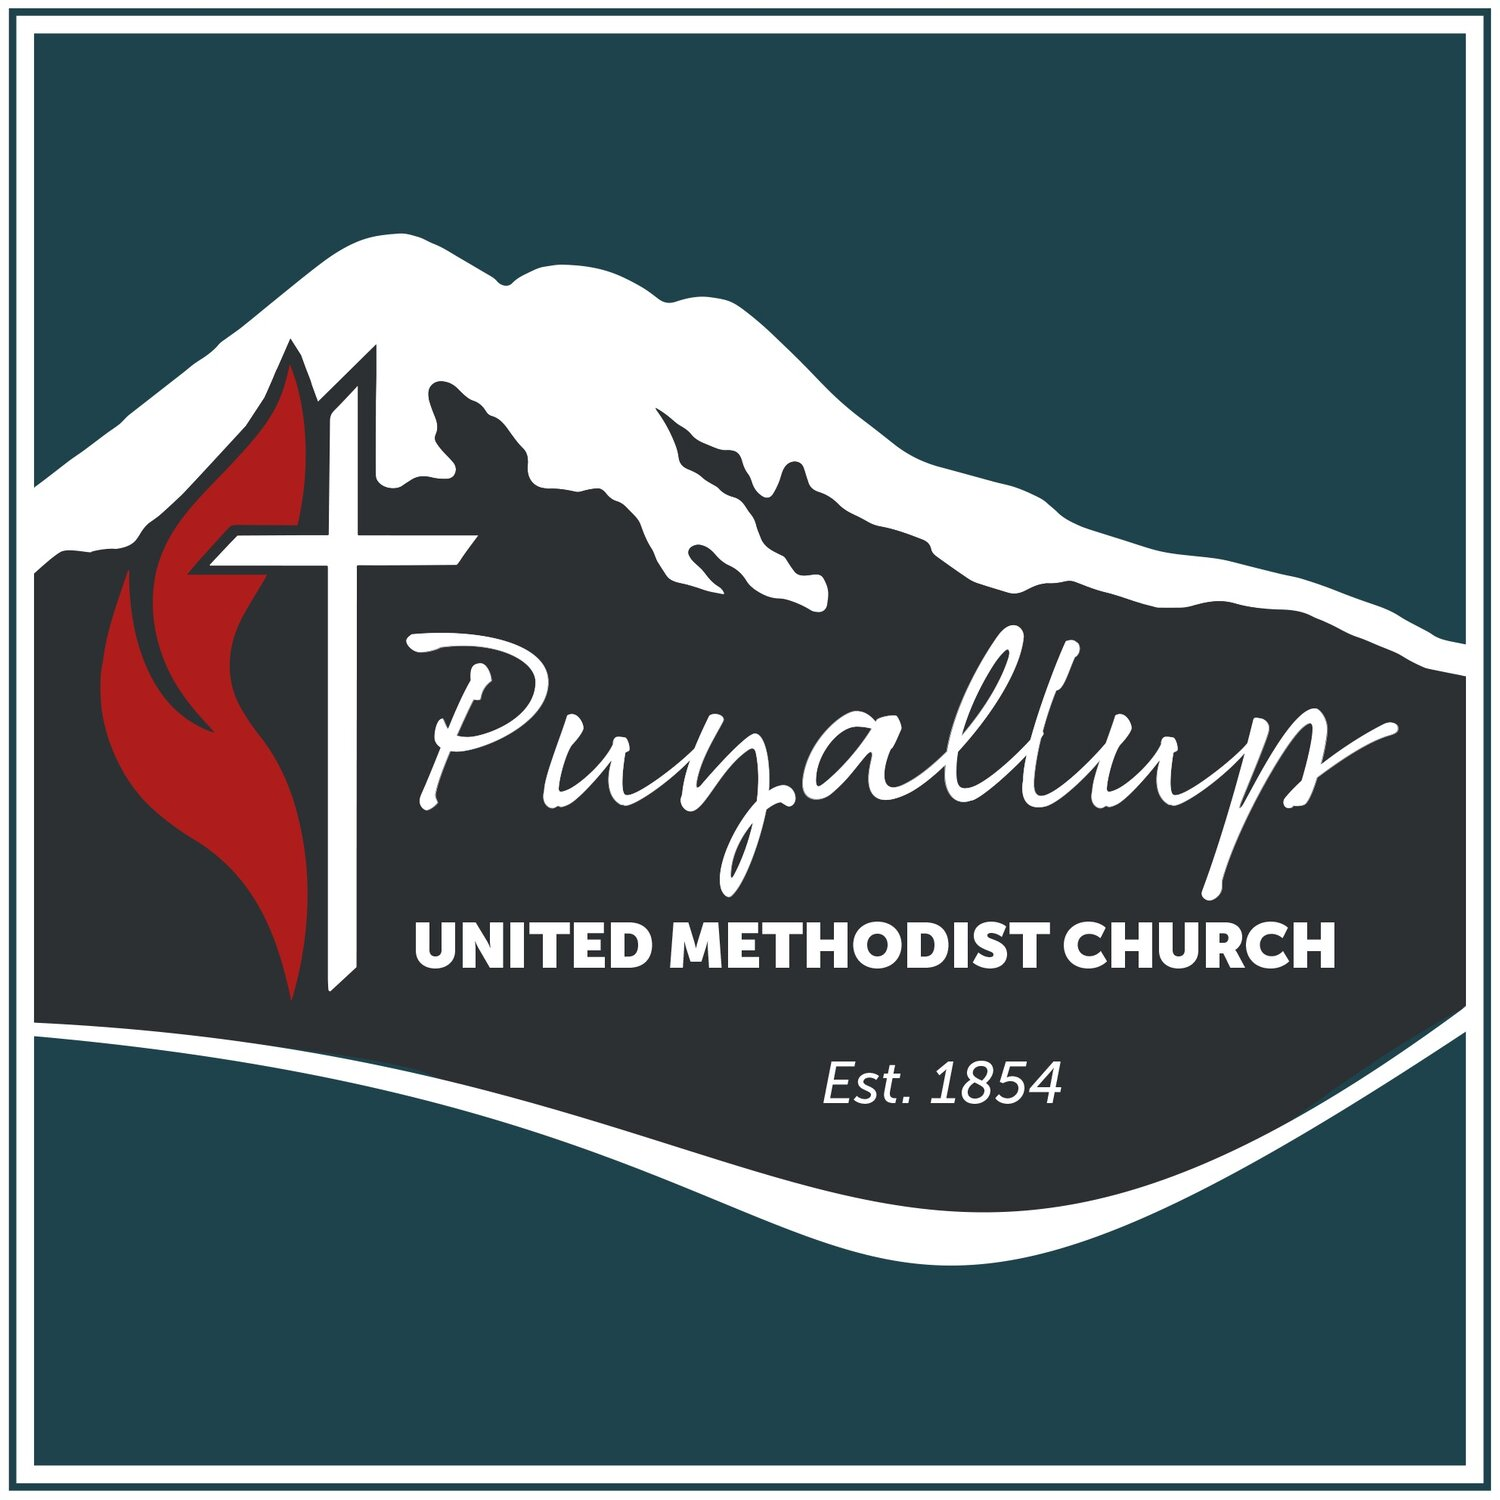 Puyallup United Methodist Church